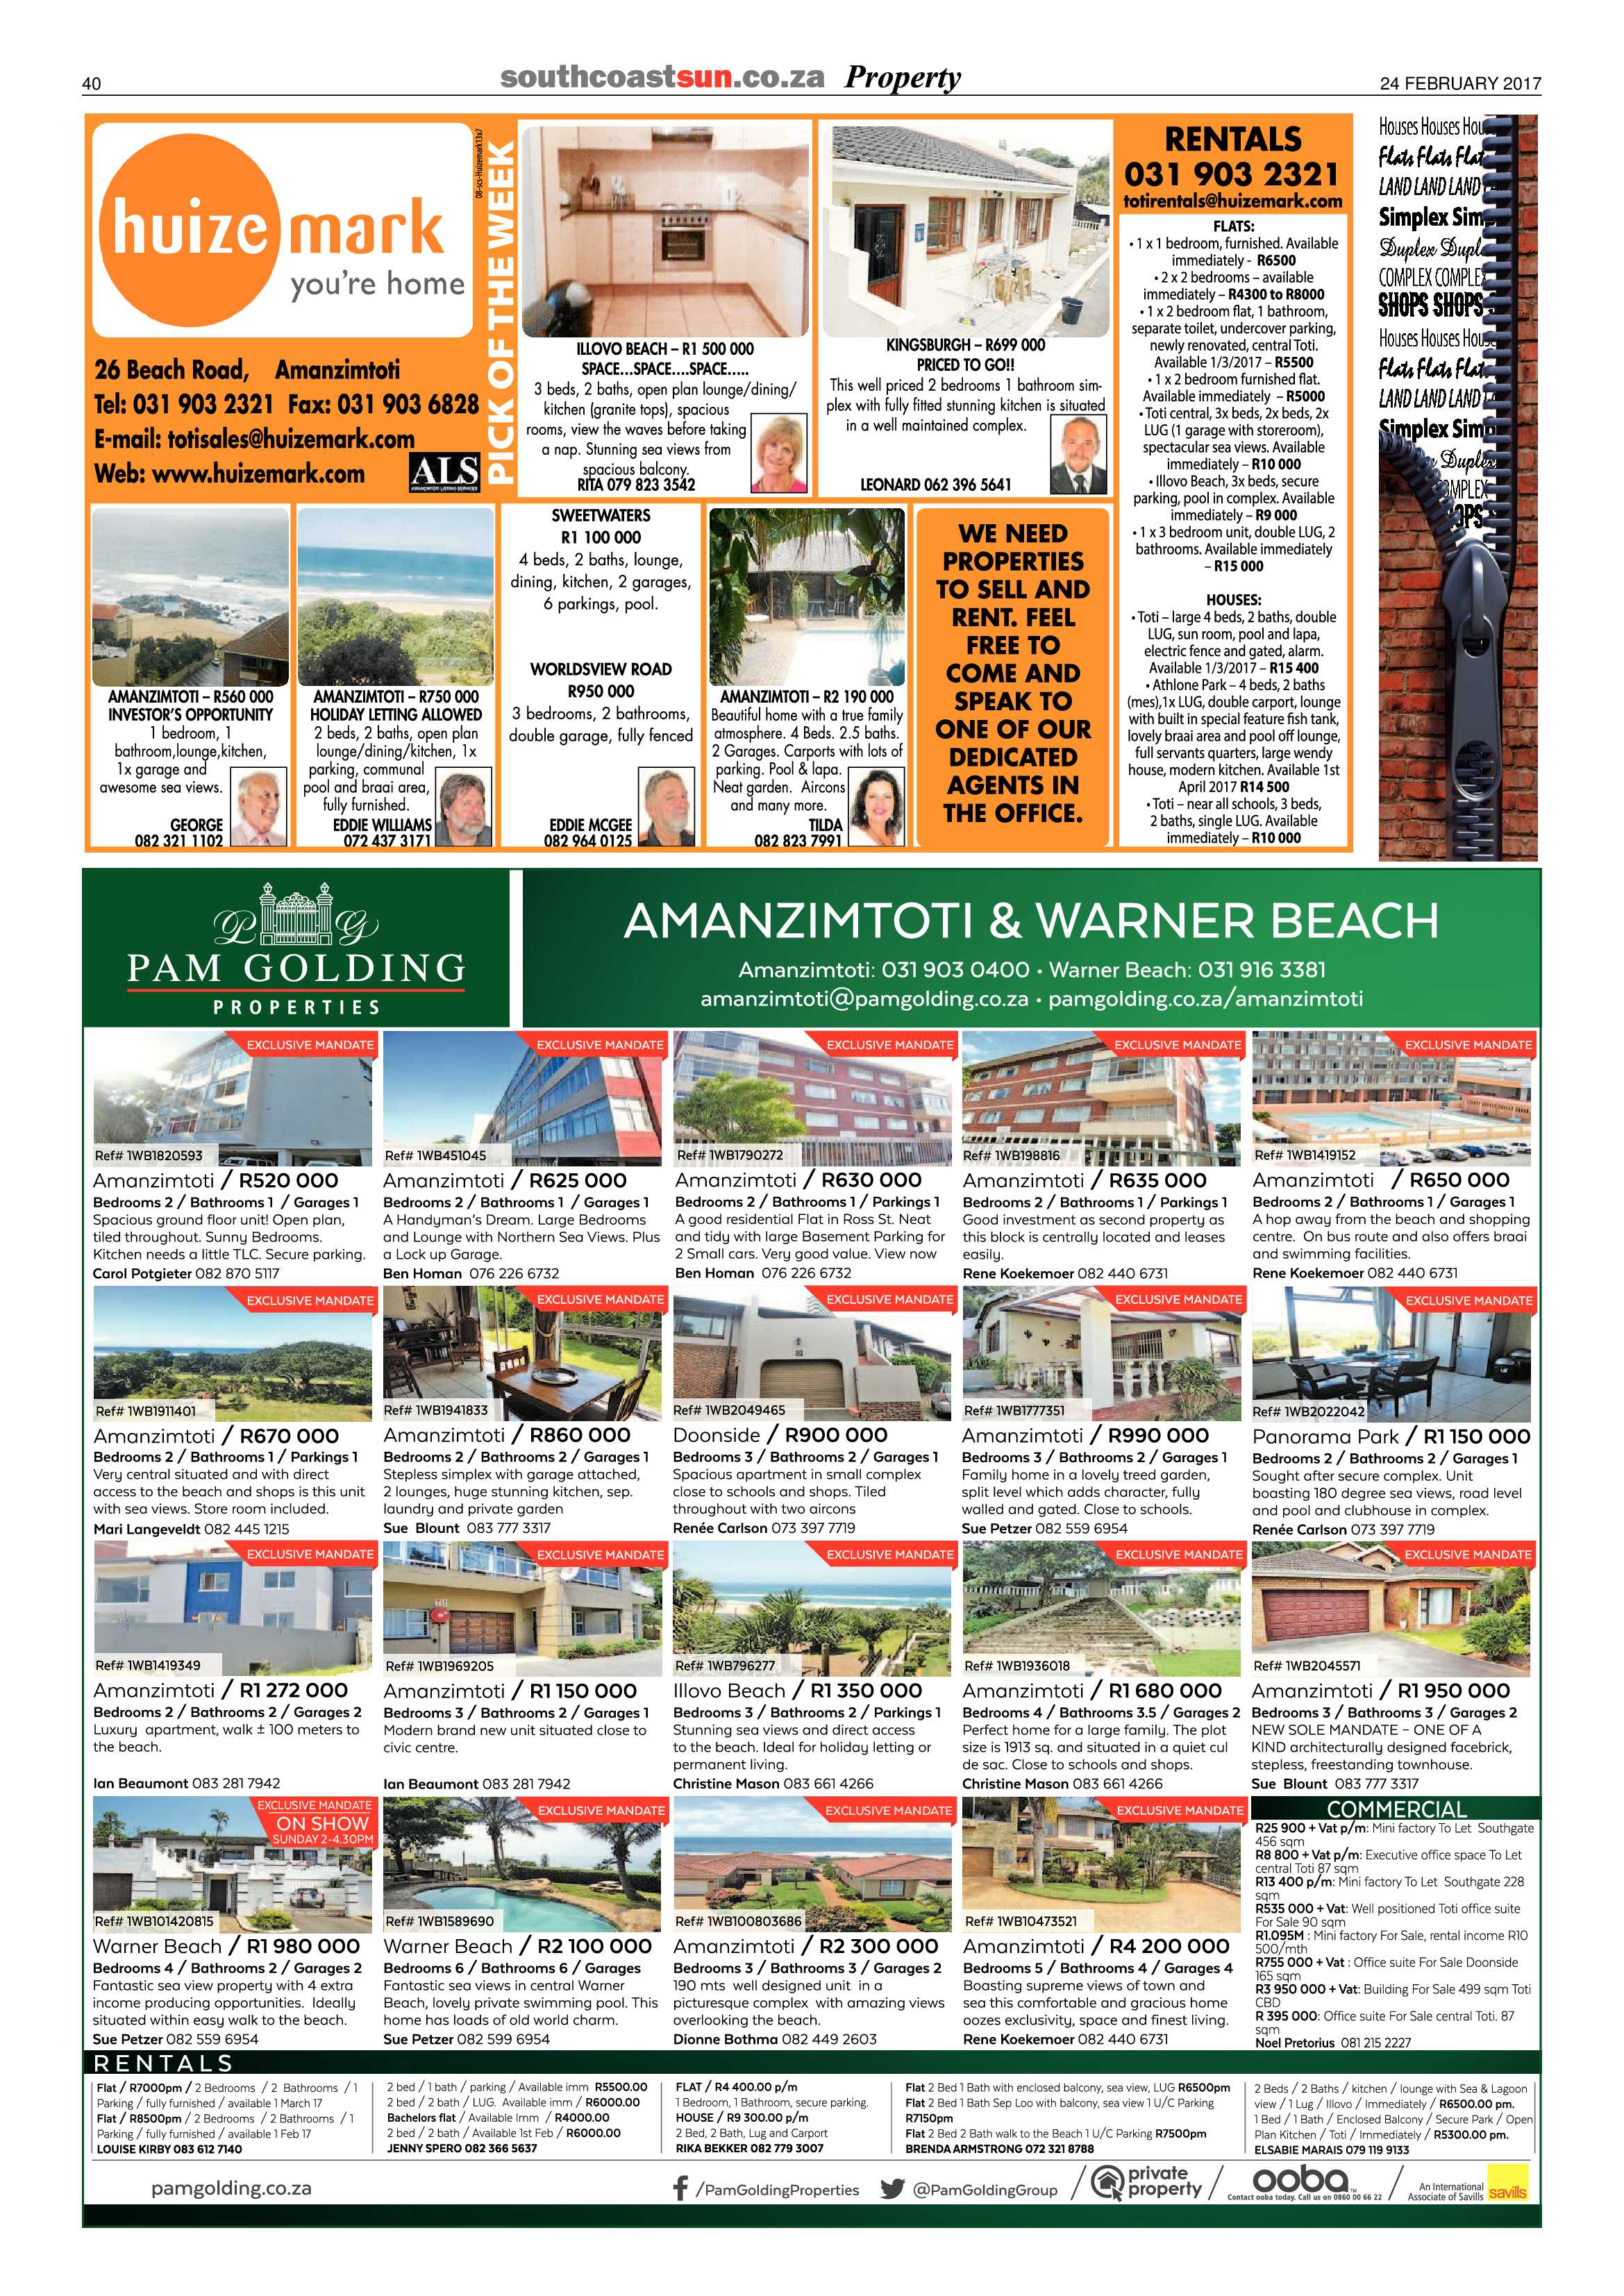 24-february-2017-epapers-page-40